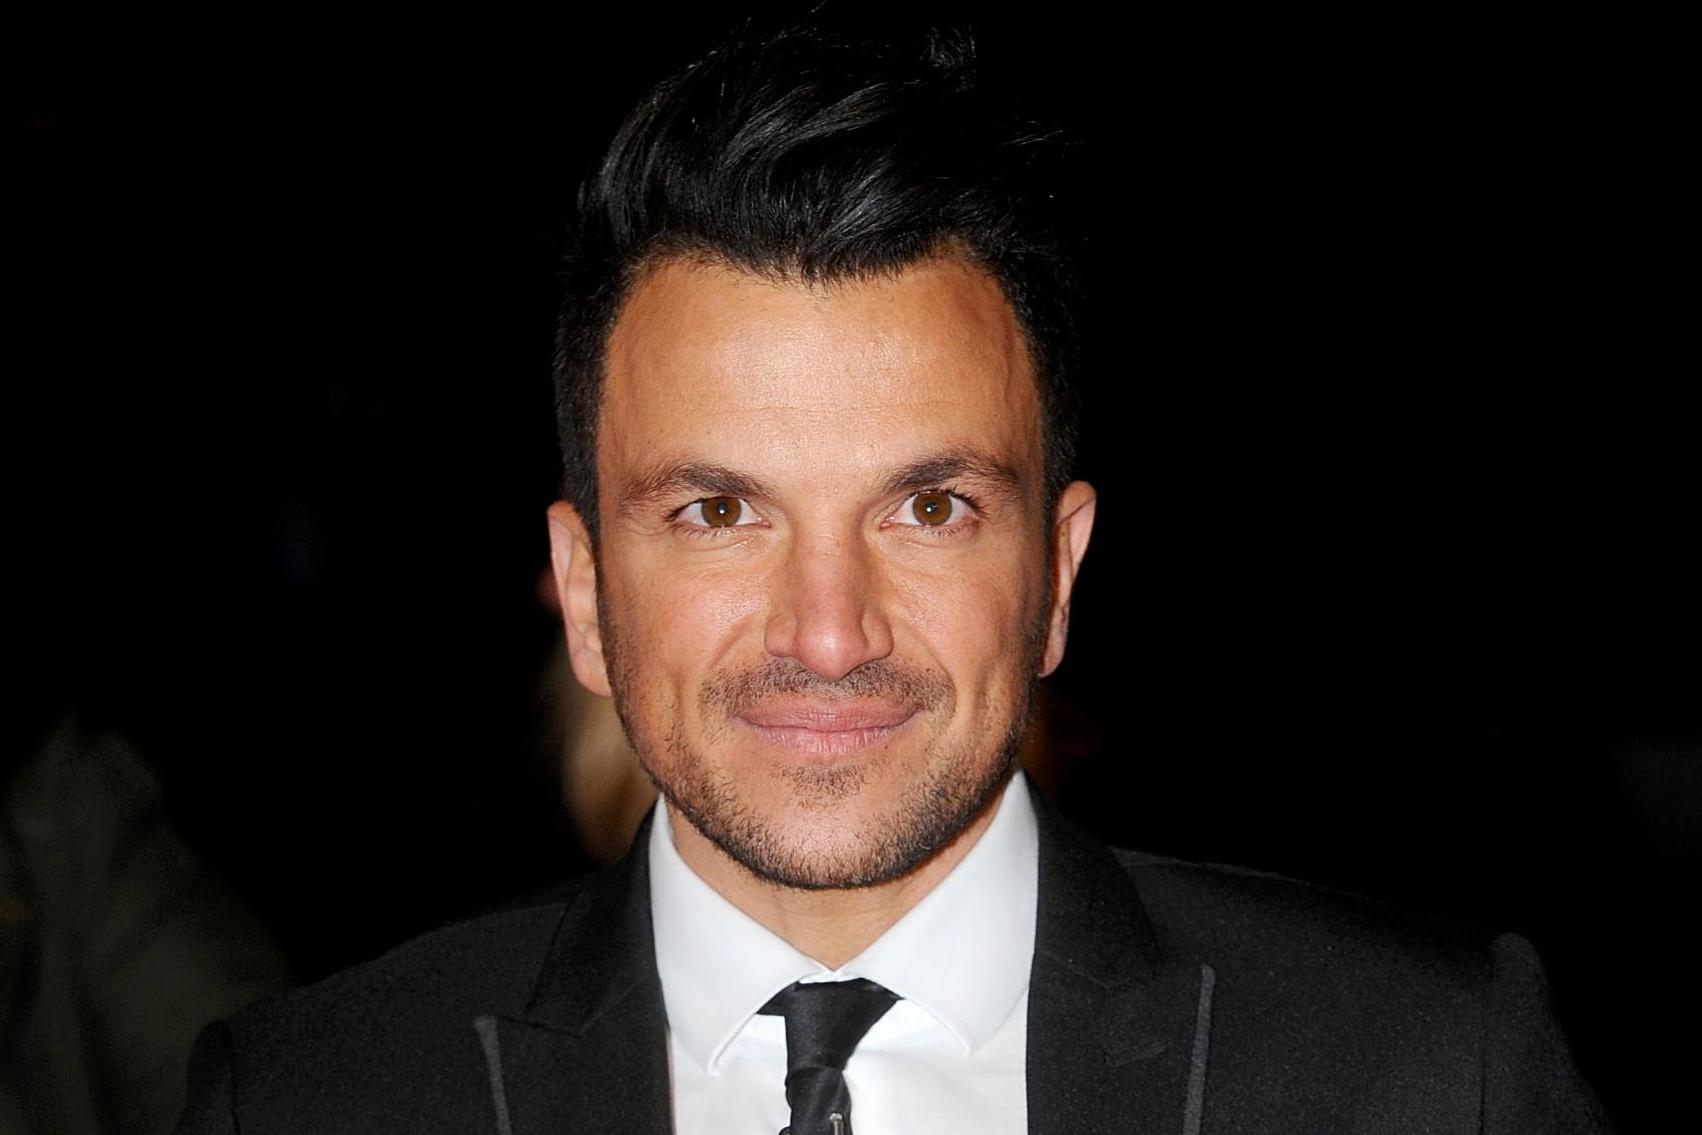 Peter Andre calls for 'duty of care' across reality TV show networks: 'Look at a guy like Mike Thalassitis'